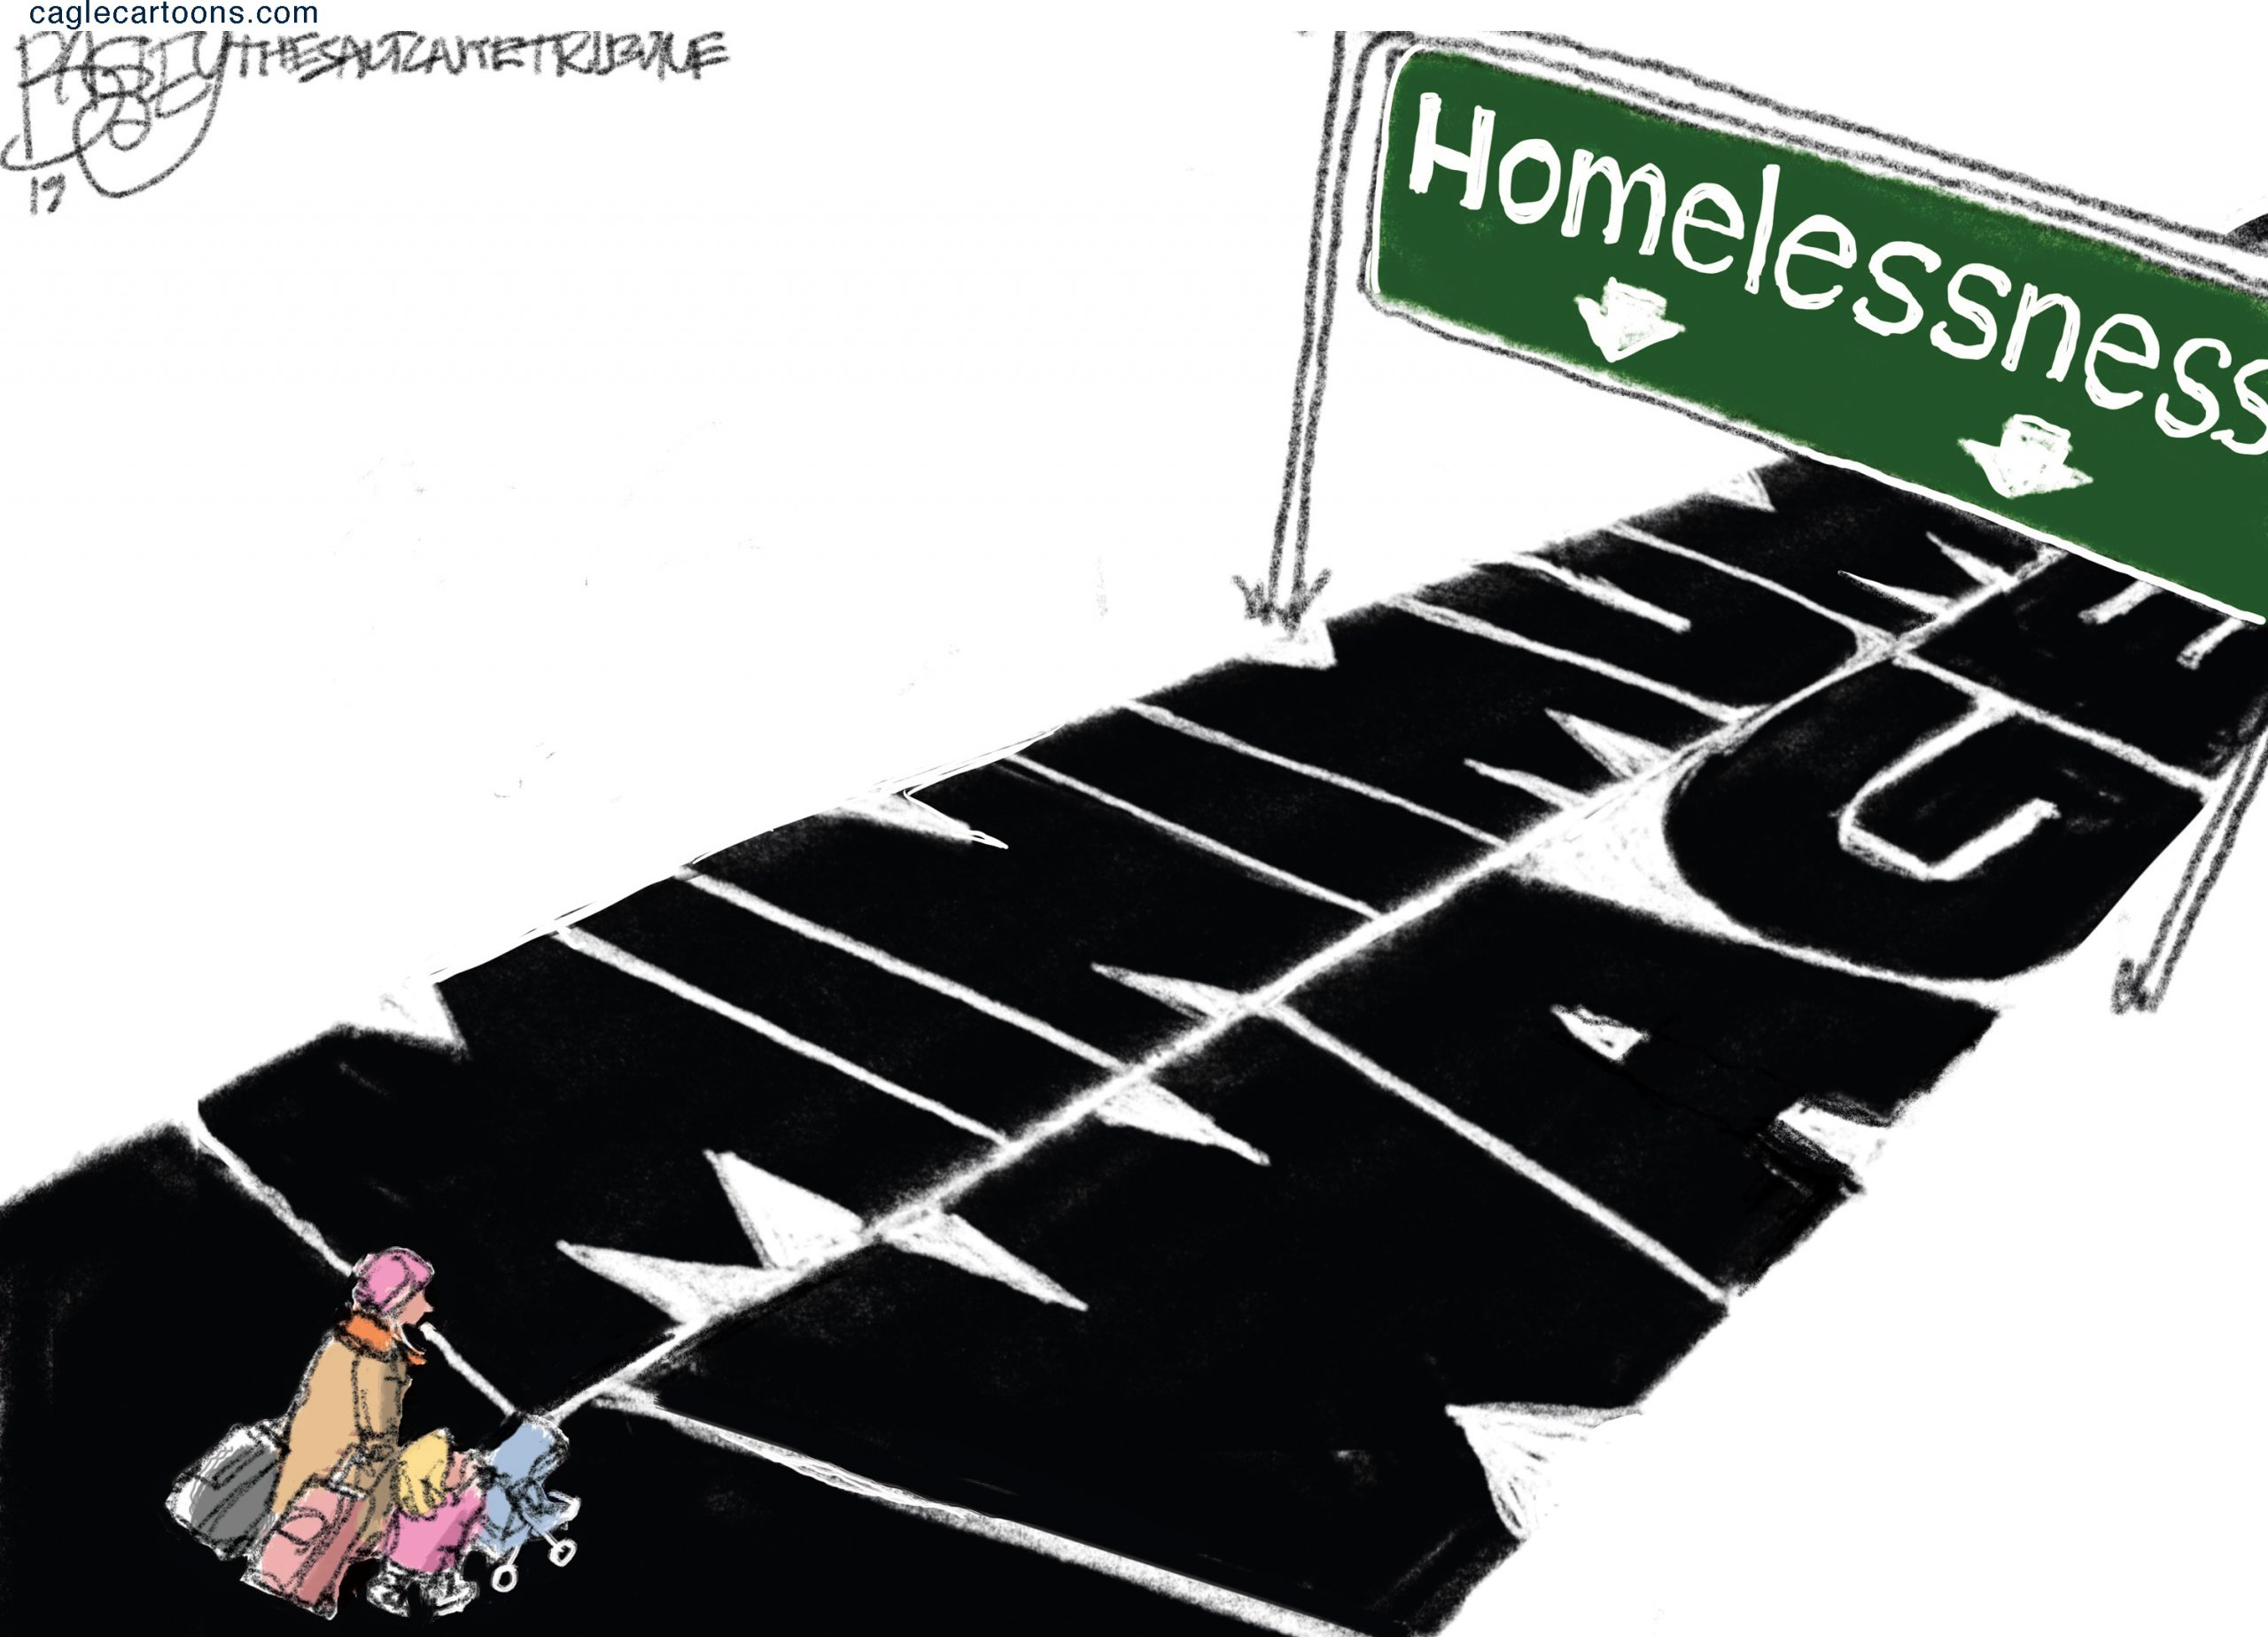 HOMELESSNESS, MINIMUM WAGE, PAY, POOR, HUNGRY, FOOD INSECURE, HOMELESS, EVICTION, EVICTED, POVERTY, WORK,JOBS